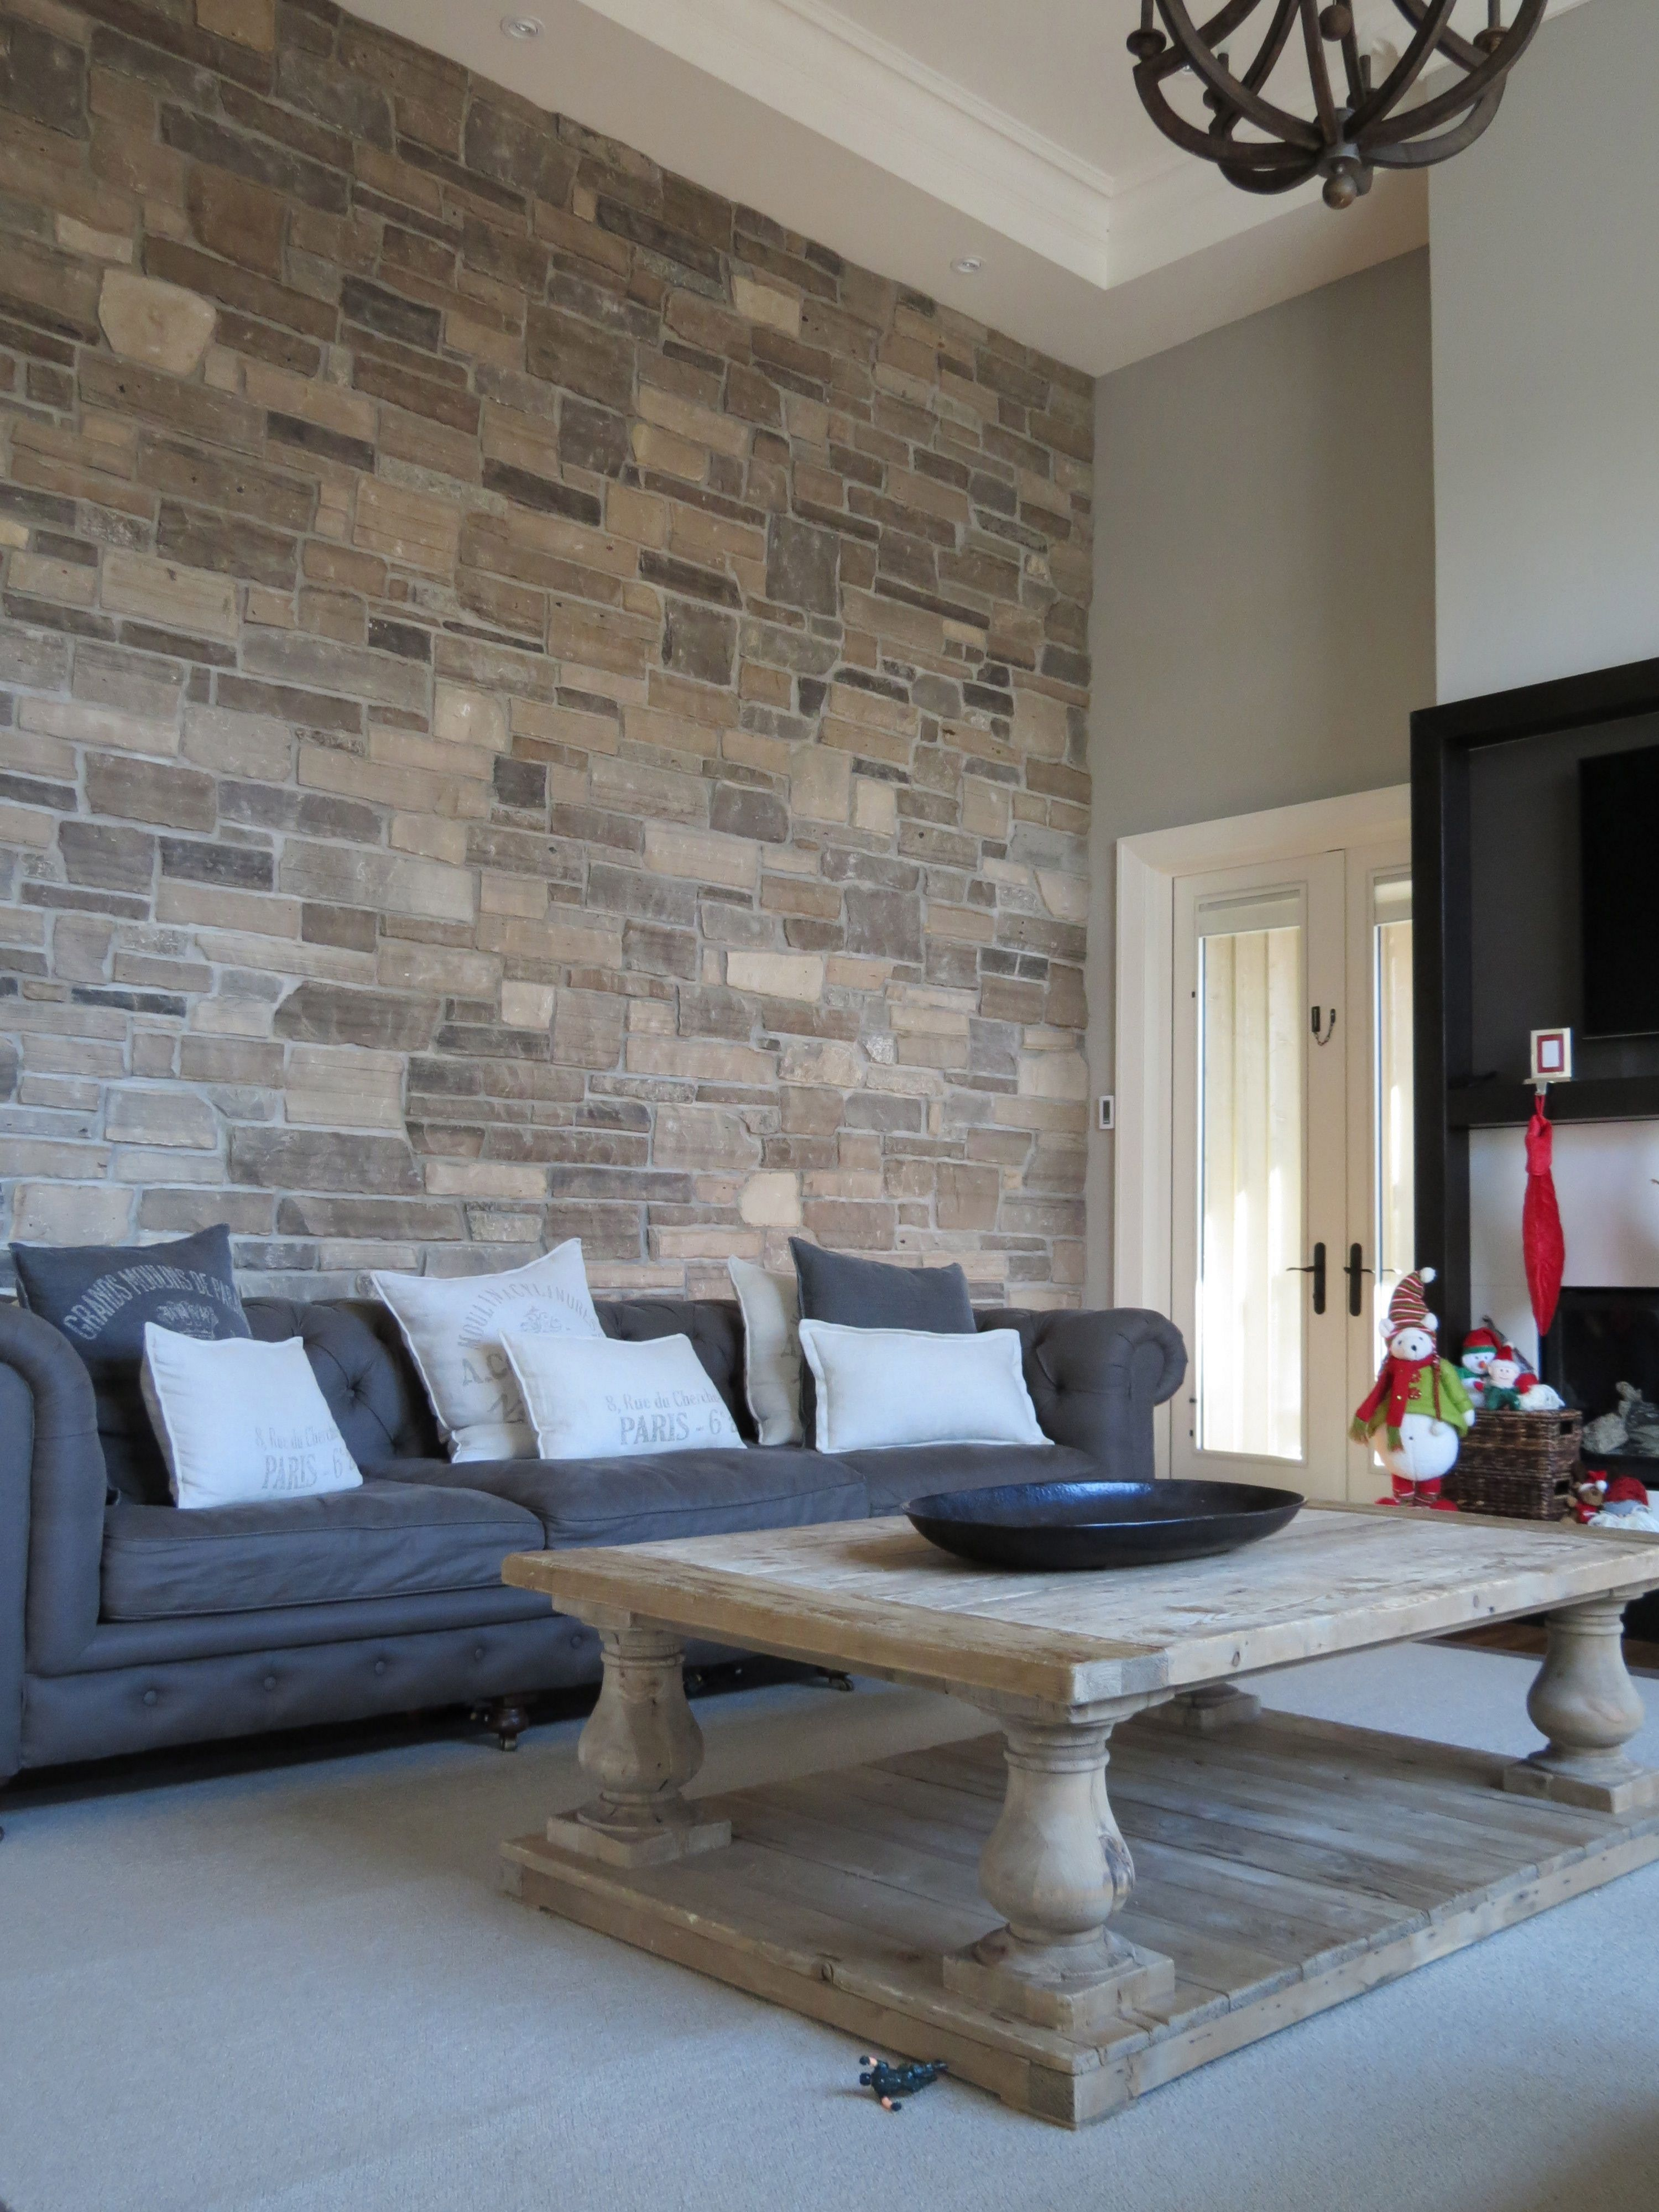 Pin By Juedward On Lake House Stone Walls Interior Stone Veneer Wall Feature Wall Living Room